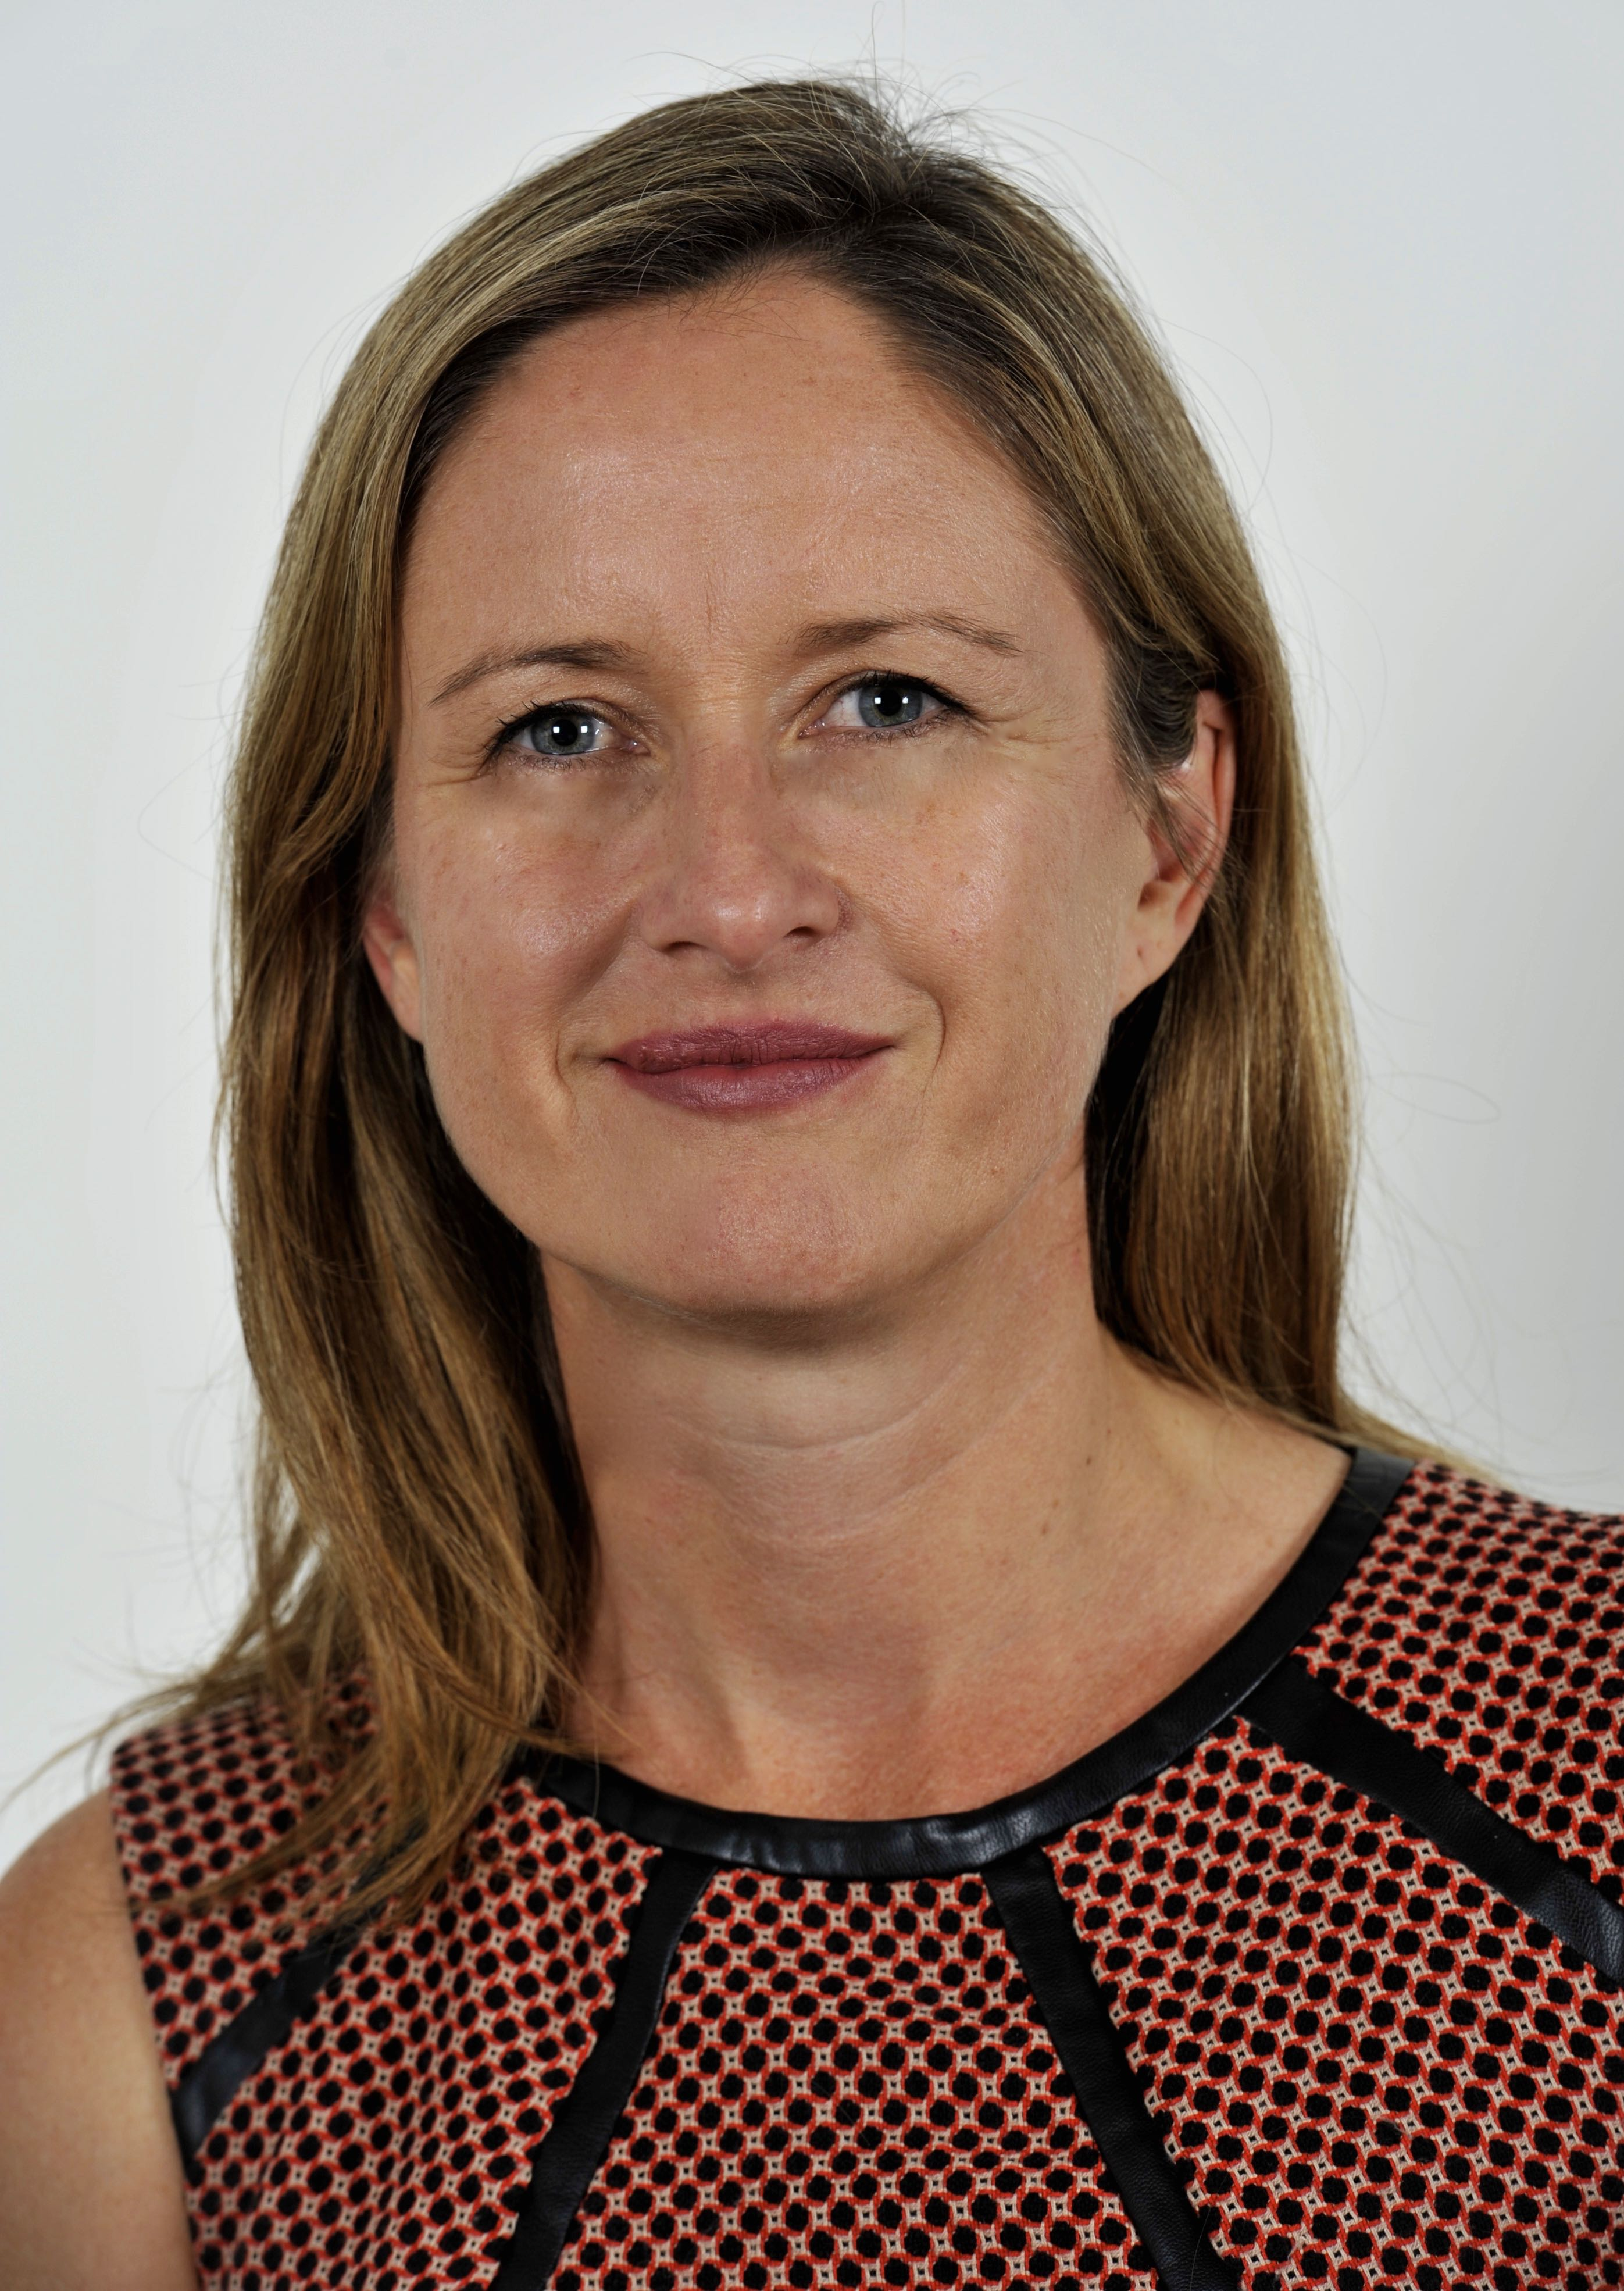 Image of Melissa Edwards